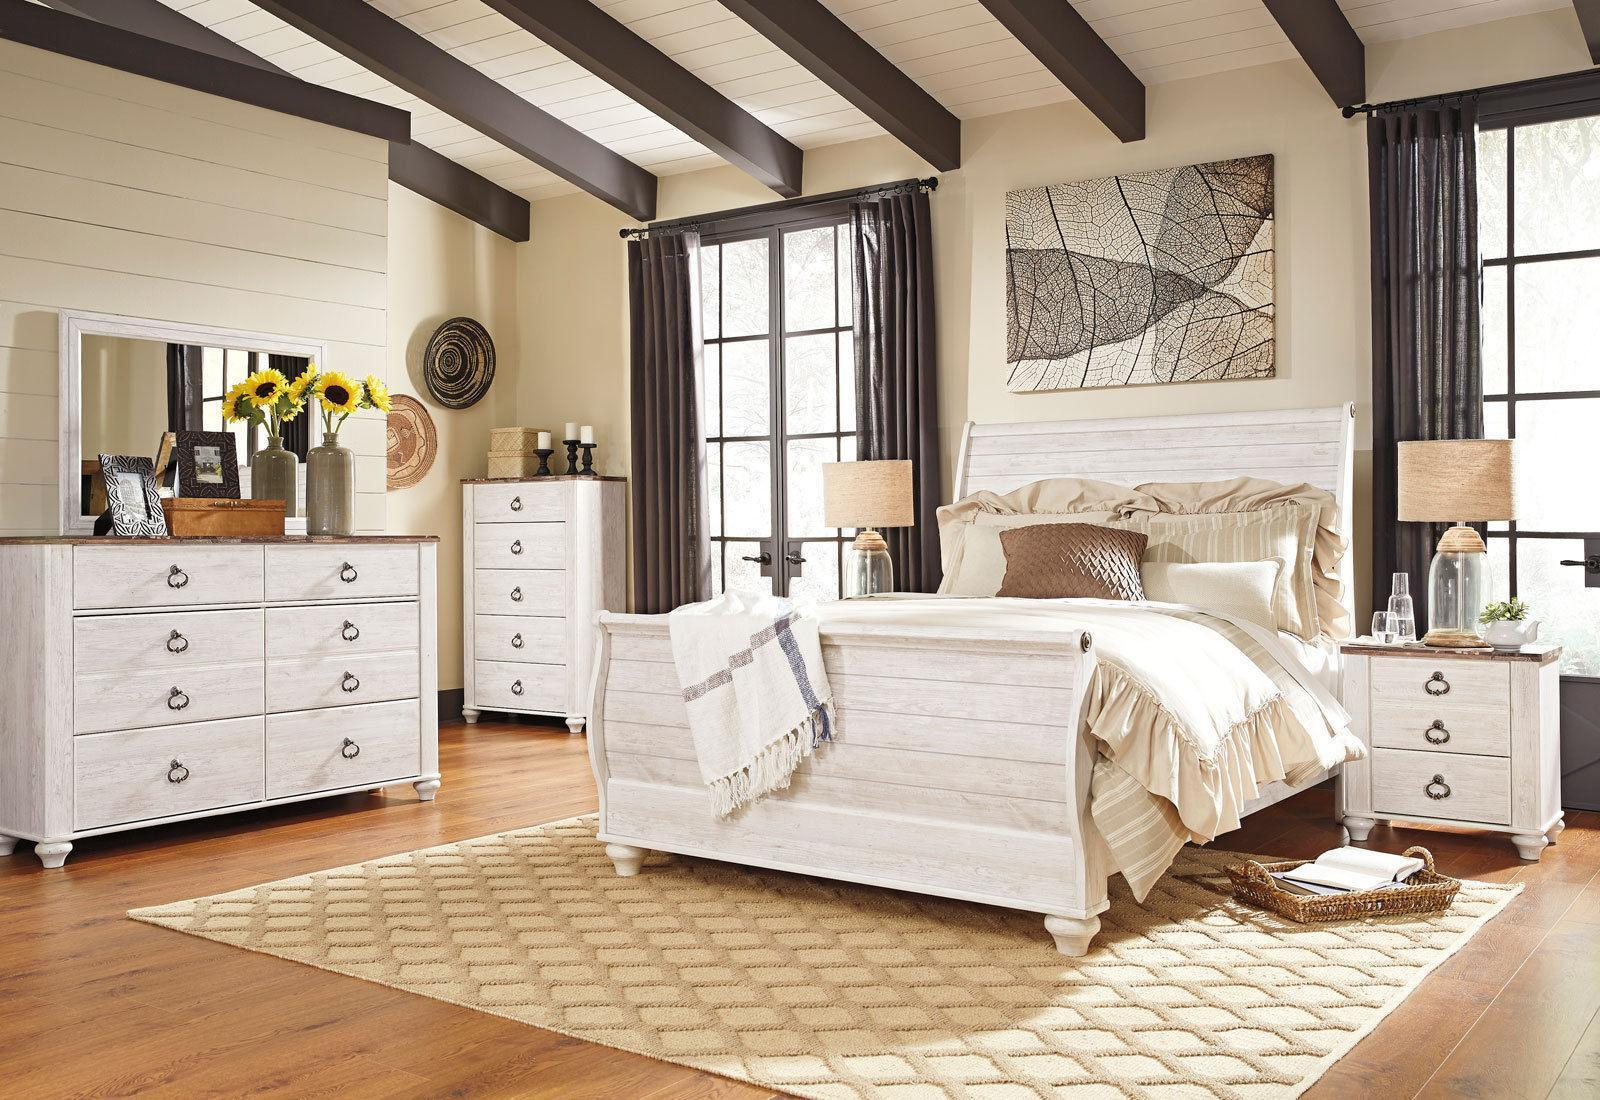 Myriad 5 pieces traditional white bedroom set furniture w - Traditional white bedroom furniture ...